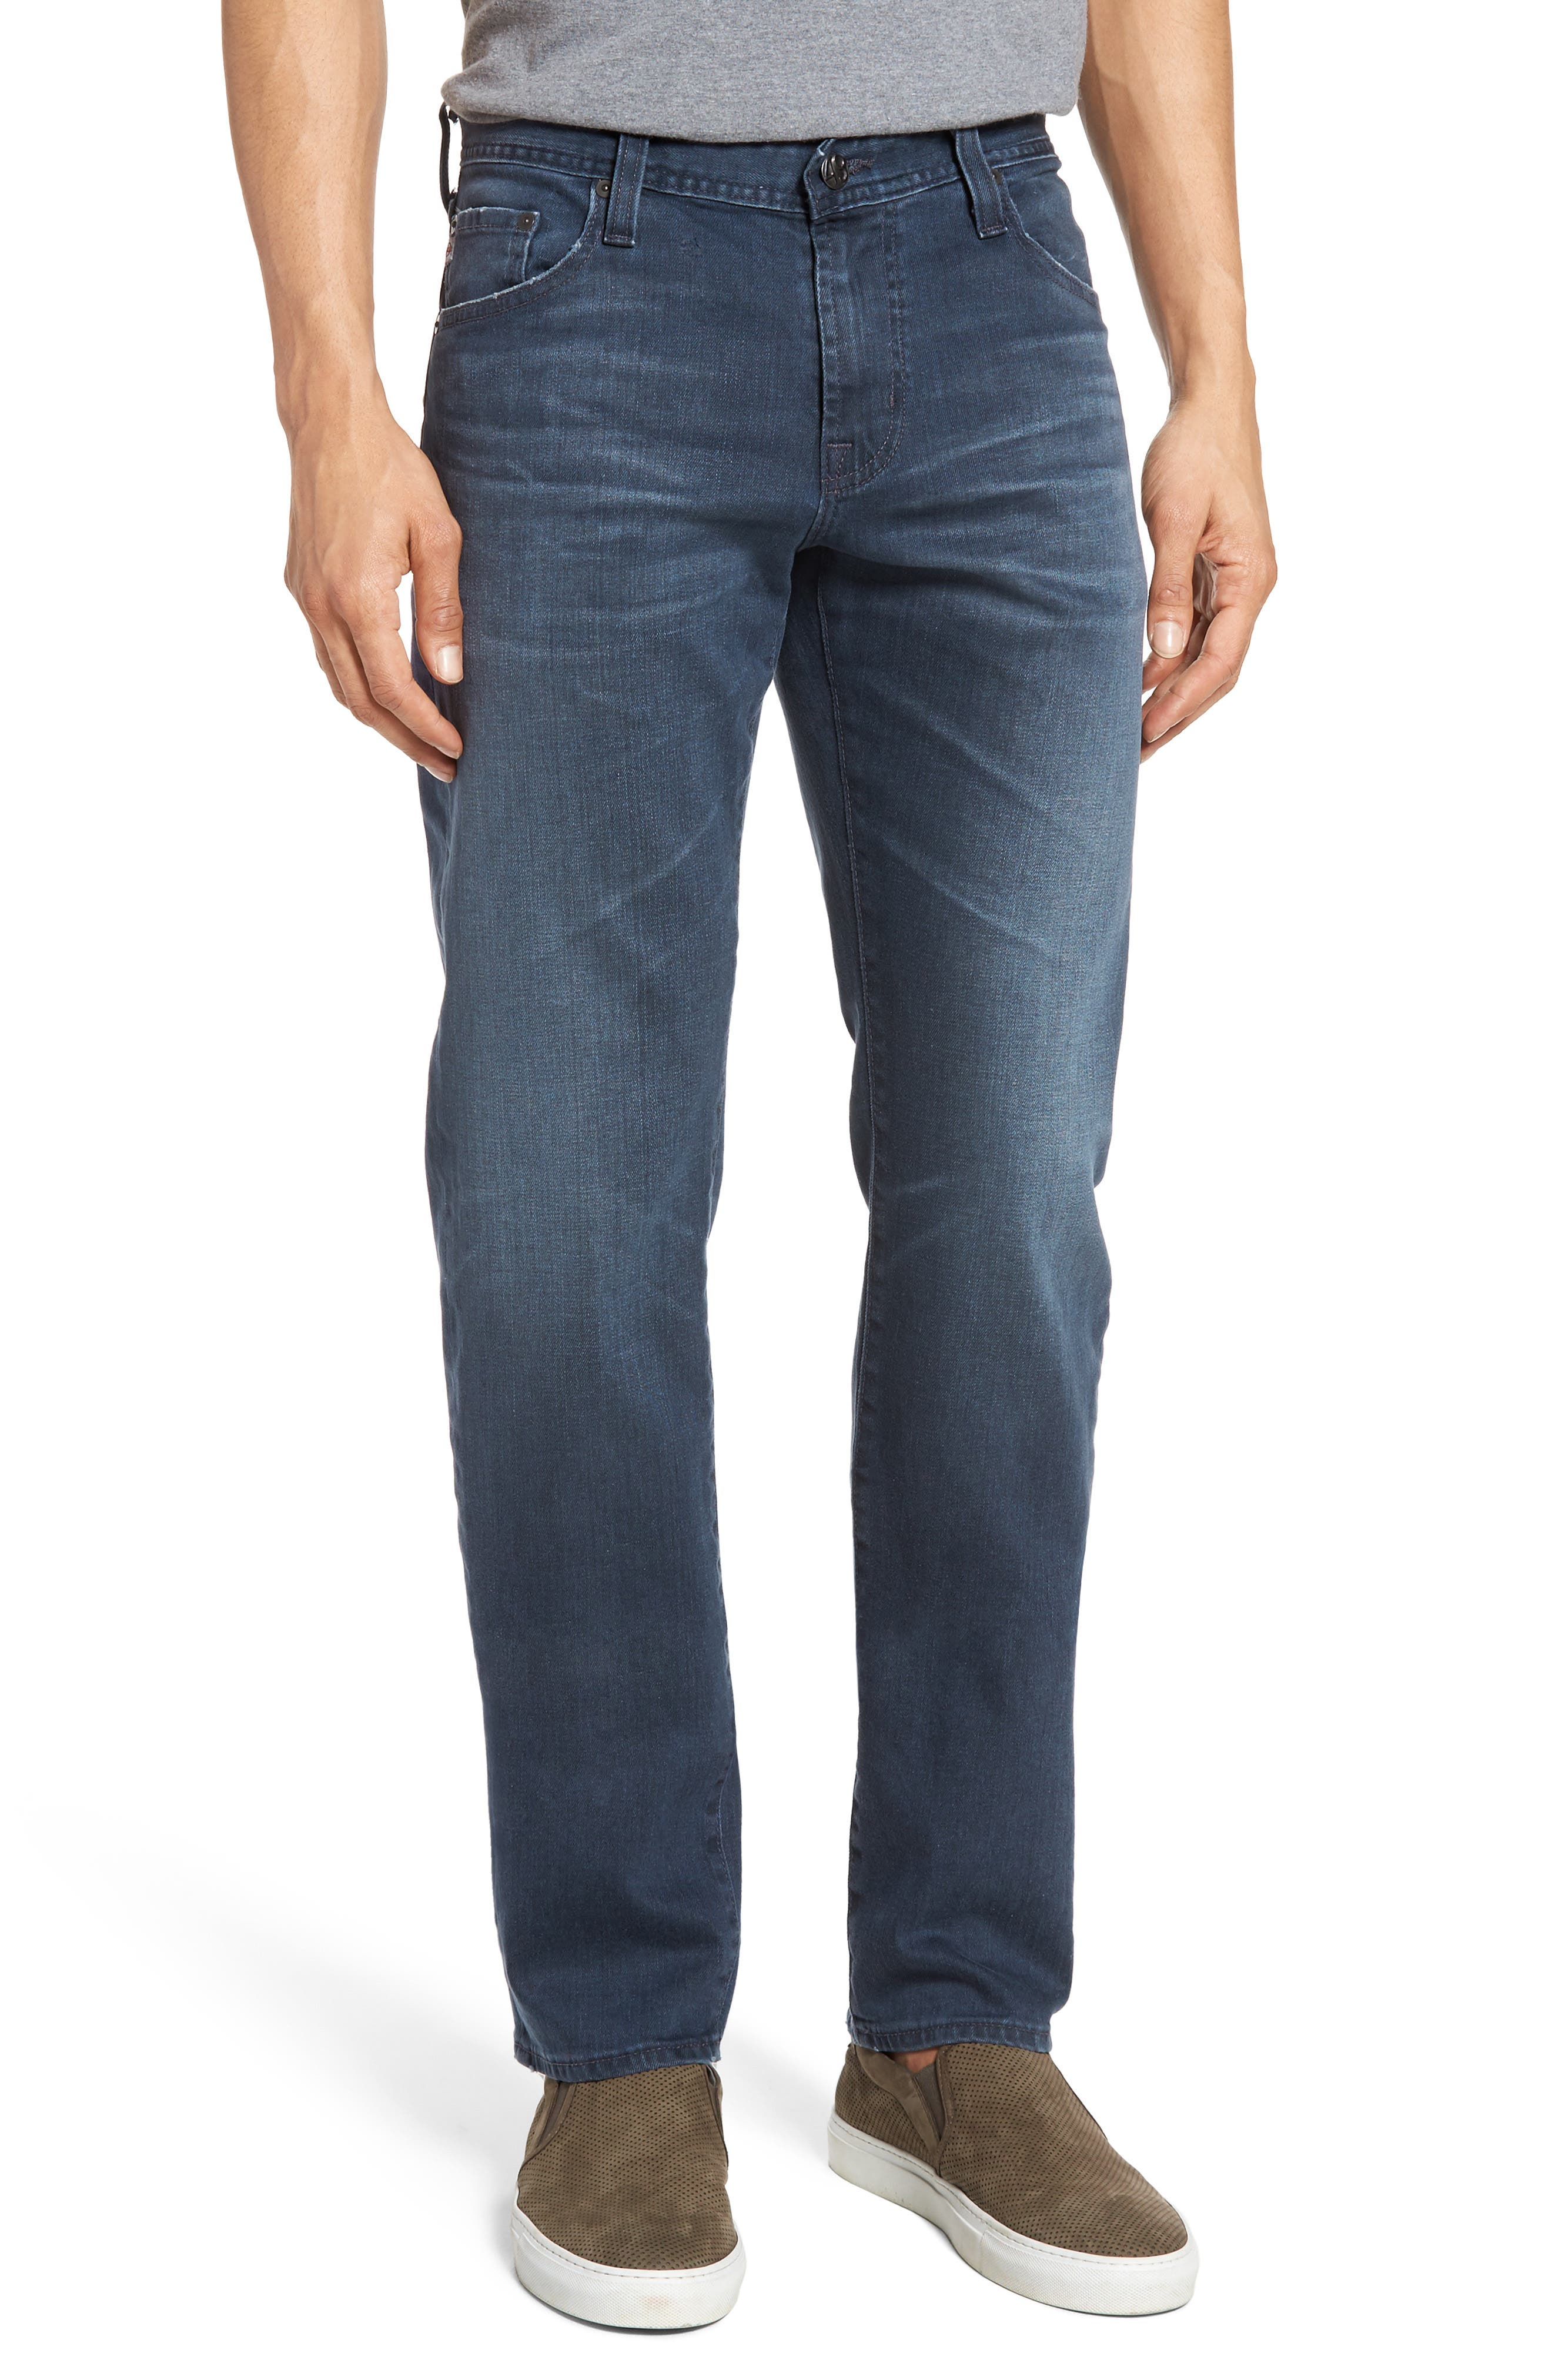 Graduate Slim Straight Leg Jeans,                             Main thumbnail 1, color,                             7 Years Blue Peril